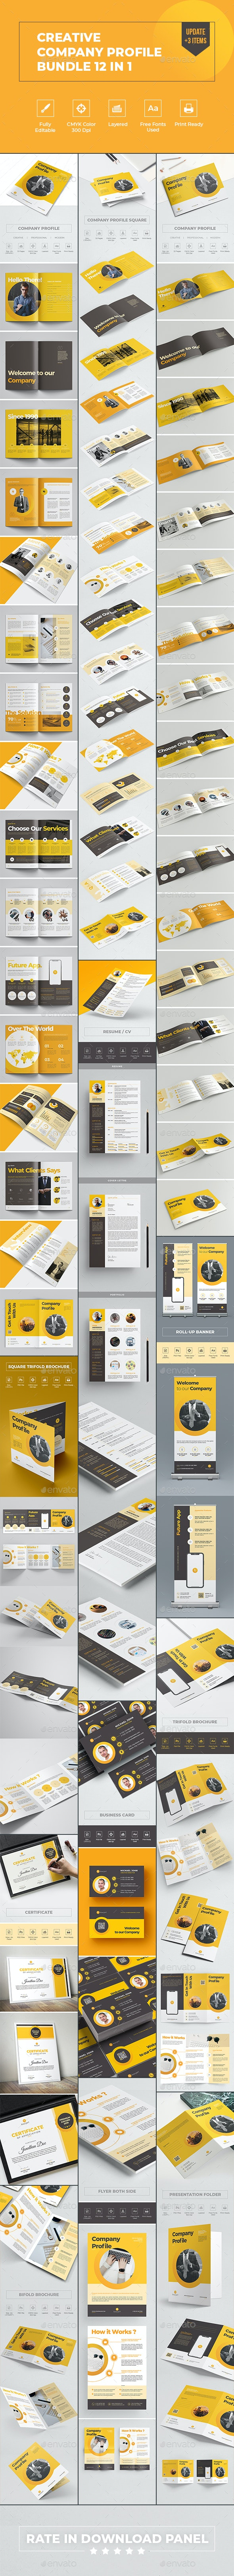 Creative Company Profile Bundle 12 in 1 - Corporate Brochures